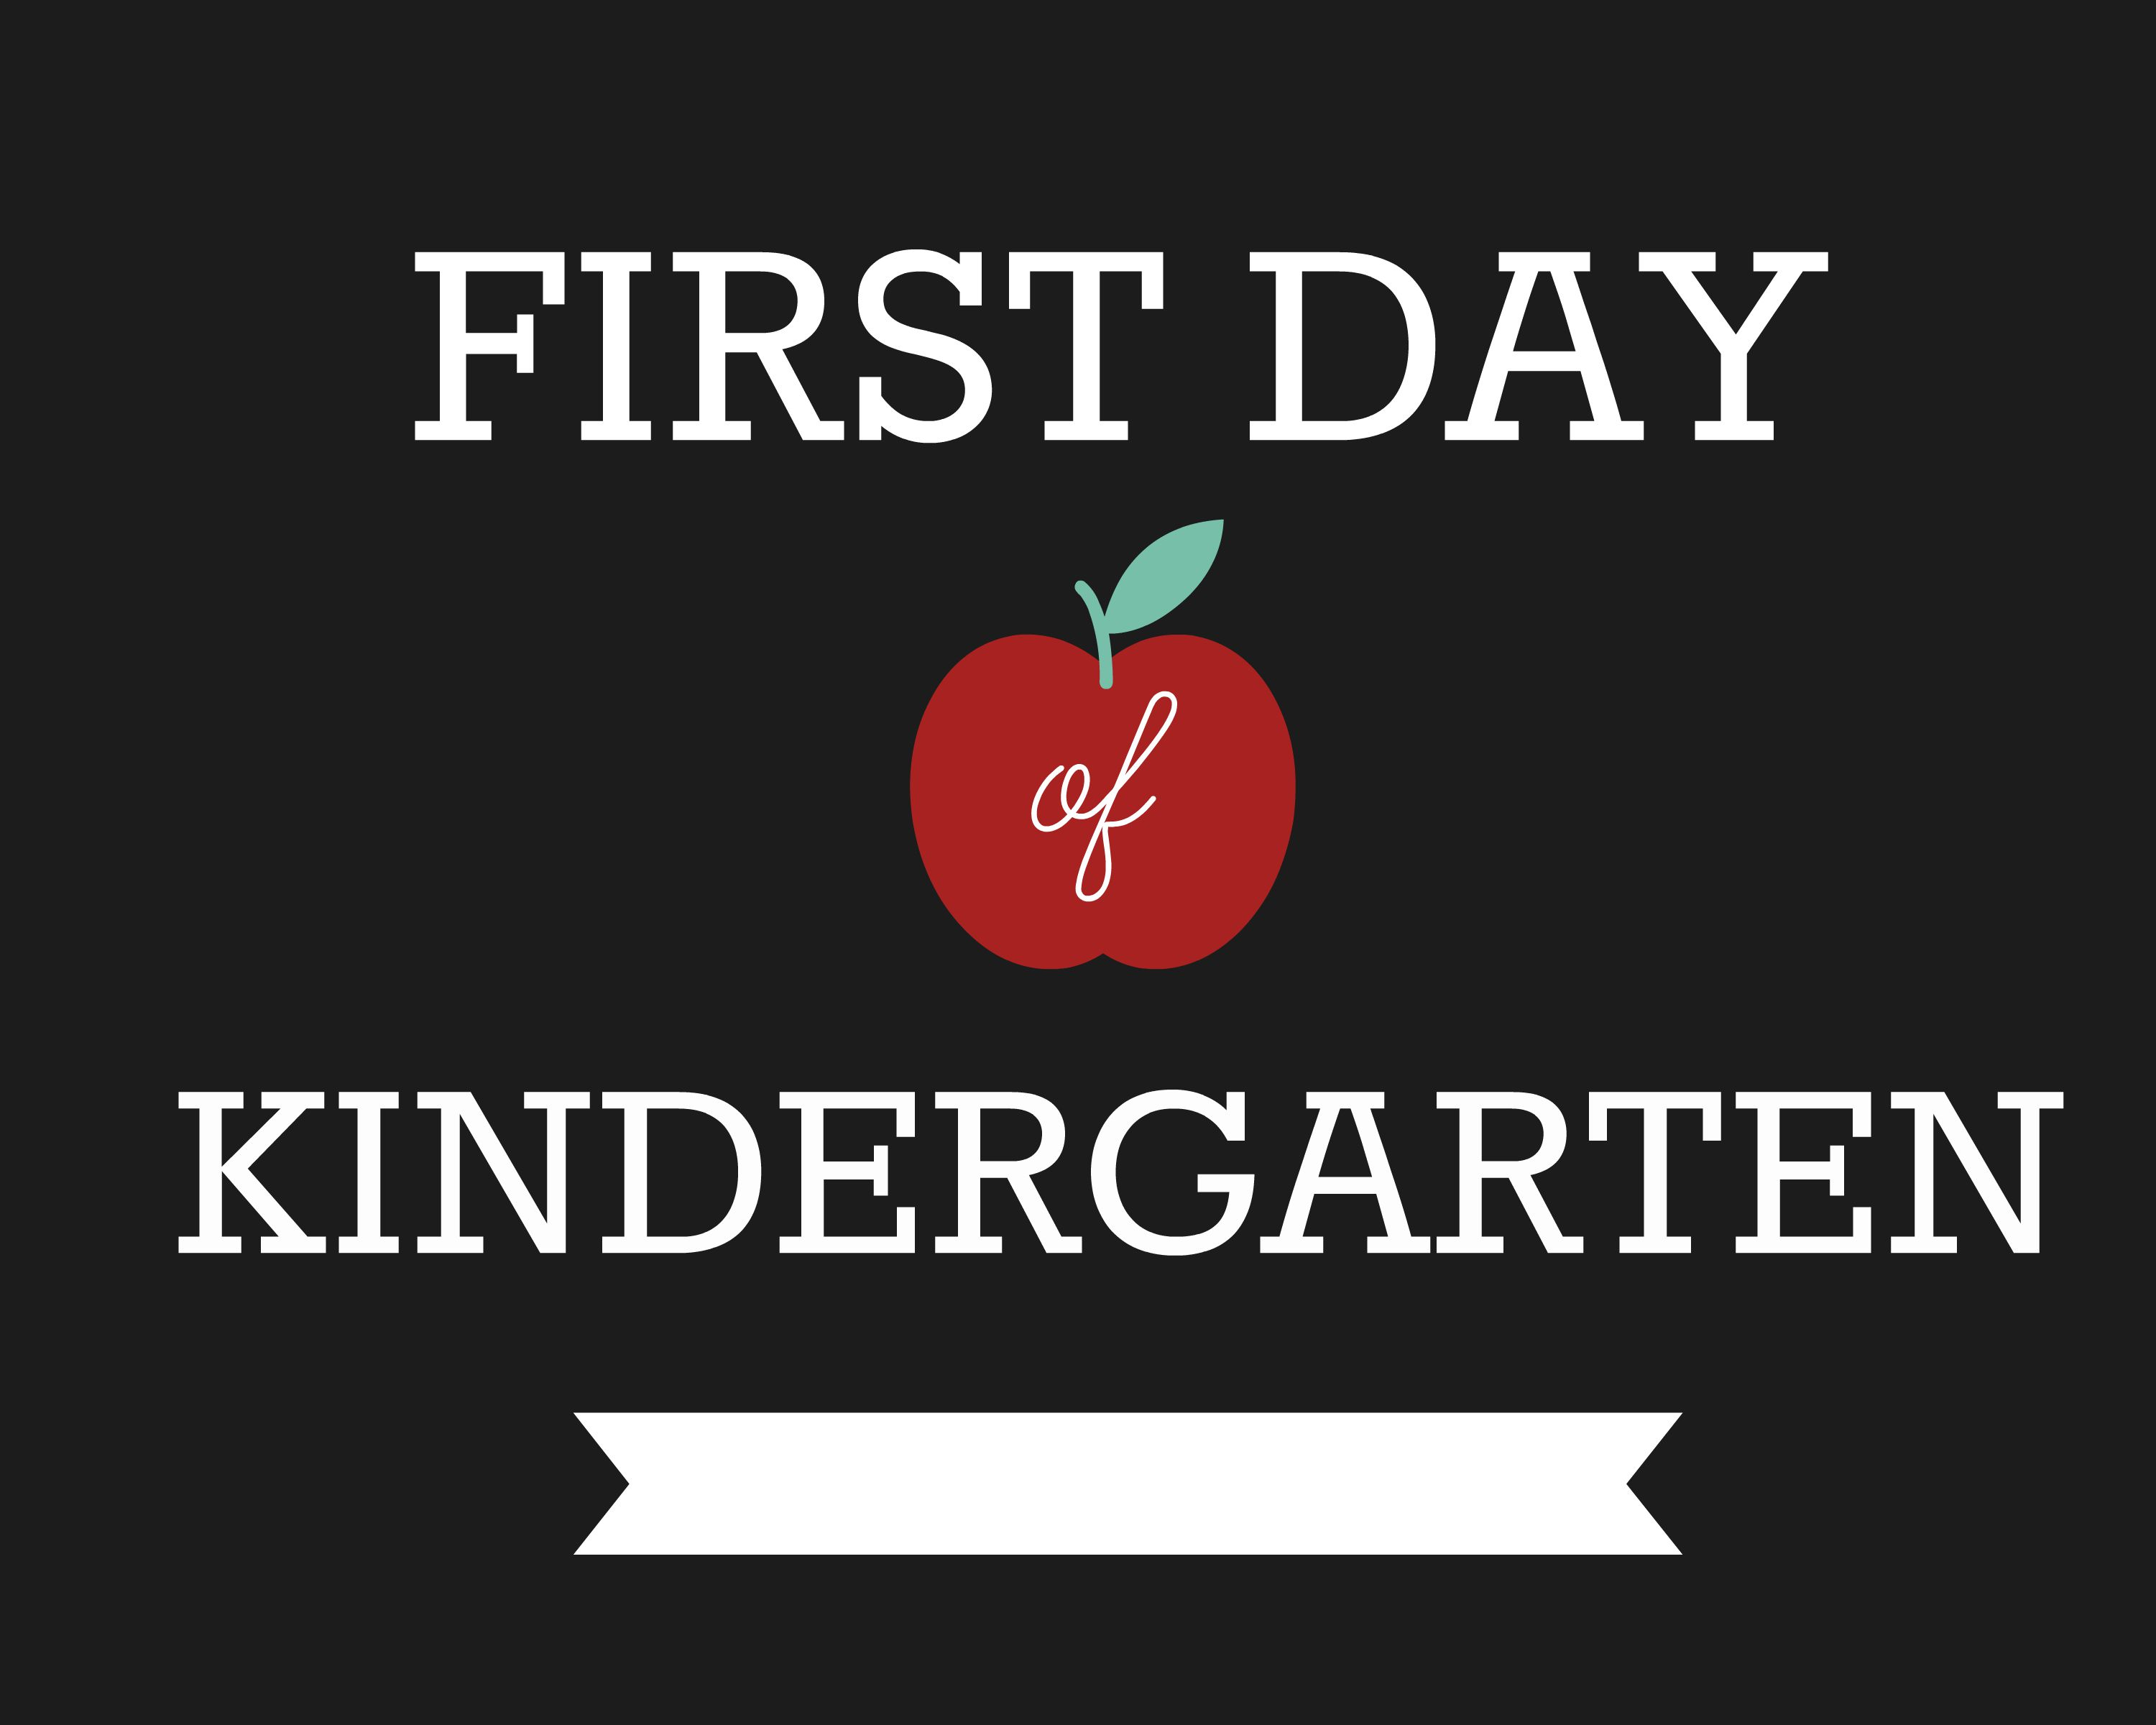 First Day of Kindergarten Sign free download